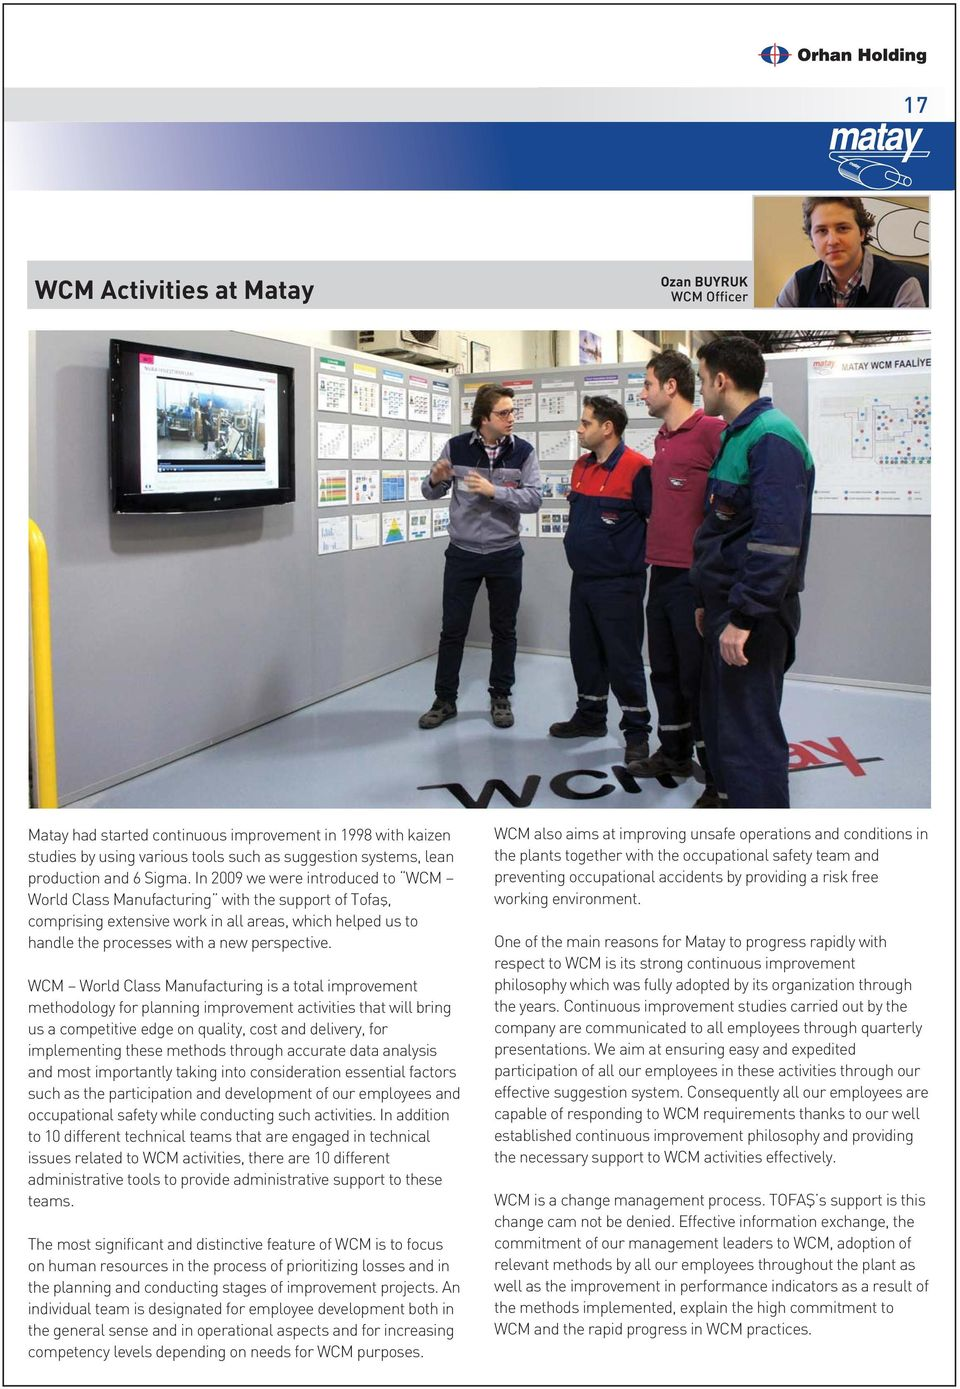 WCM World Class Manufacturing is a total improvement methodology for planning improvement activities that will bring us a competitive edge on quality, cost and delivery, for implementing these